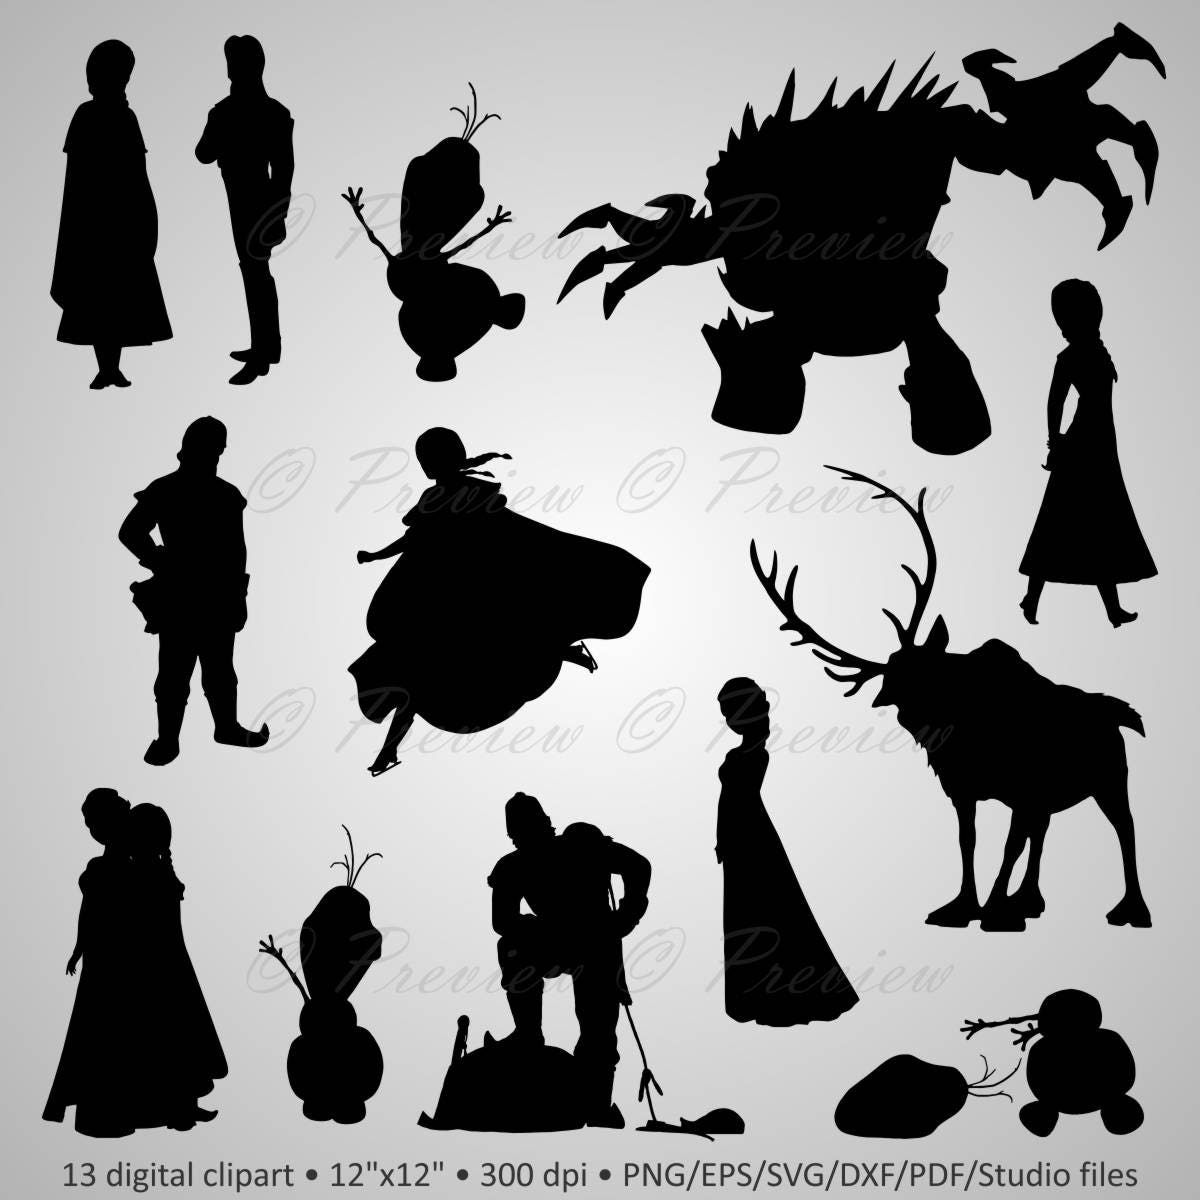 Buy 2 Get 1 Free! Digital Clipart Silhouettes Frozen ...